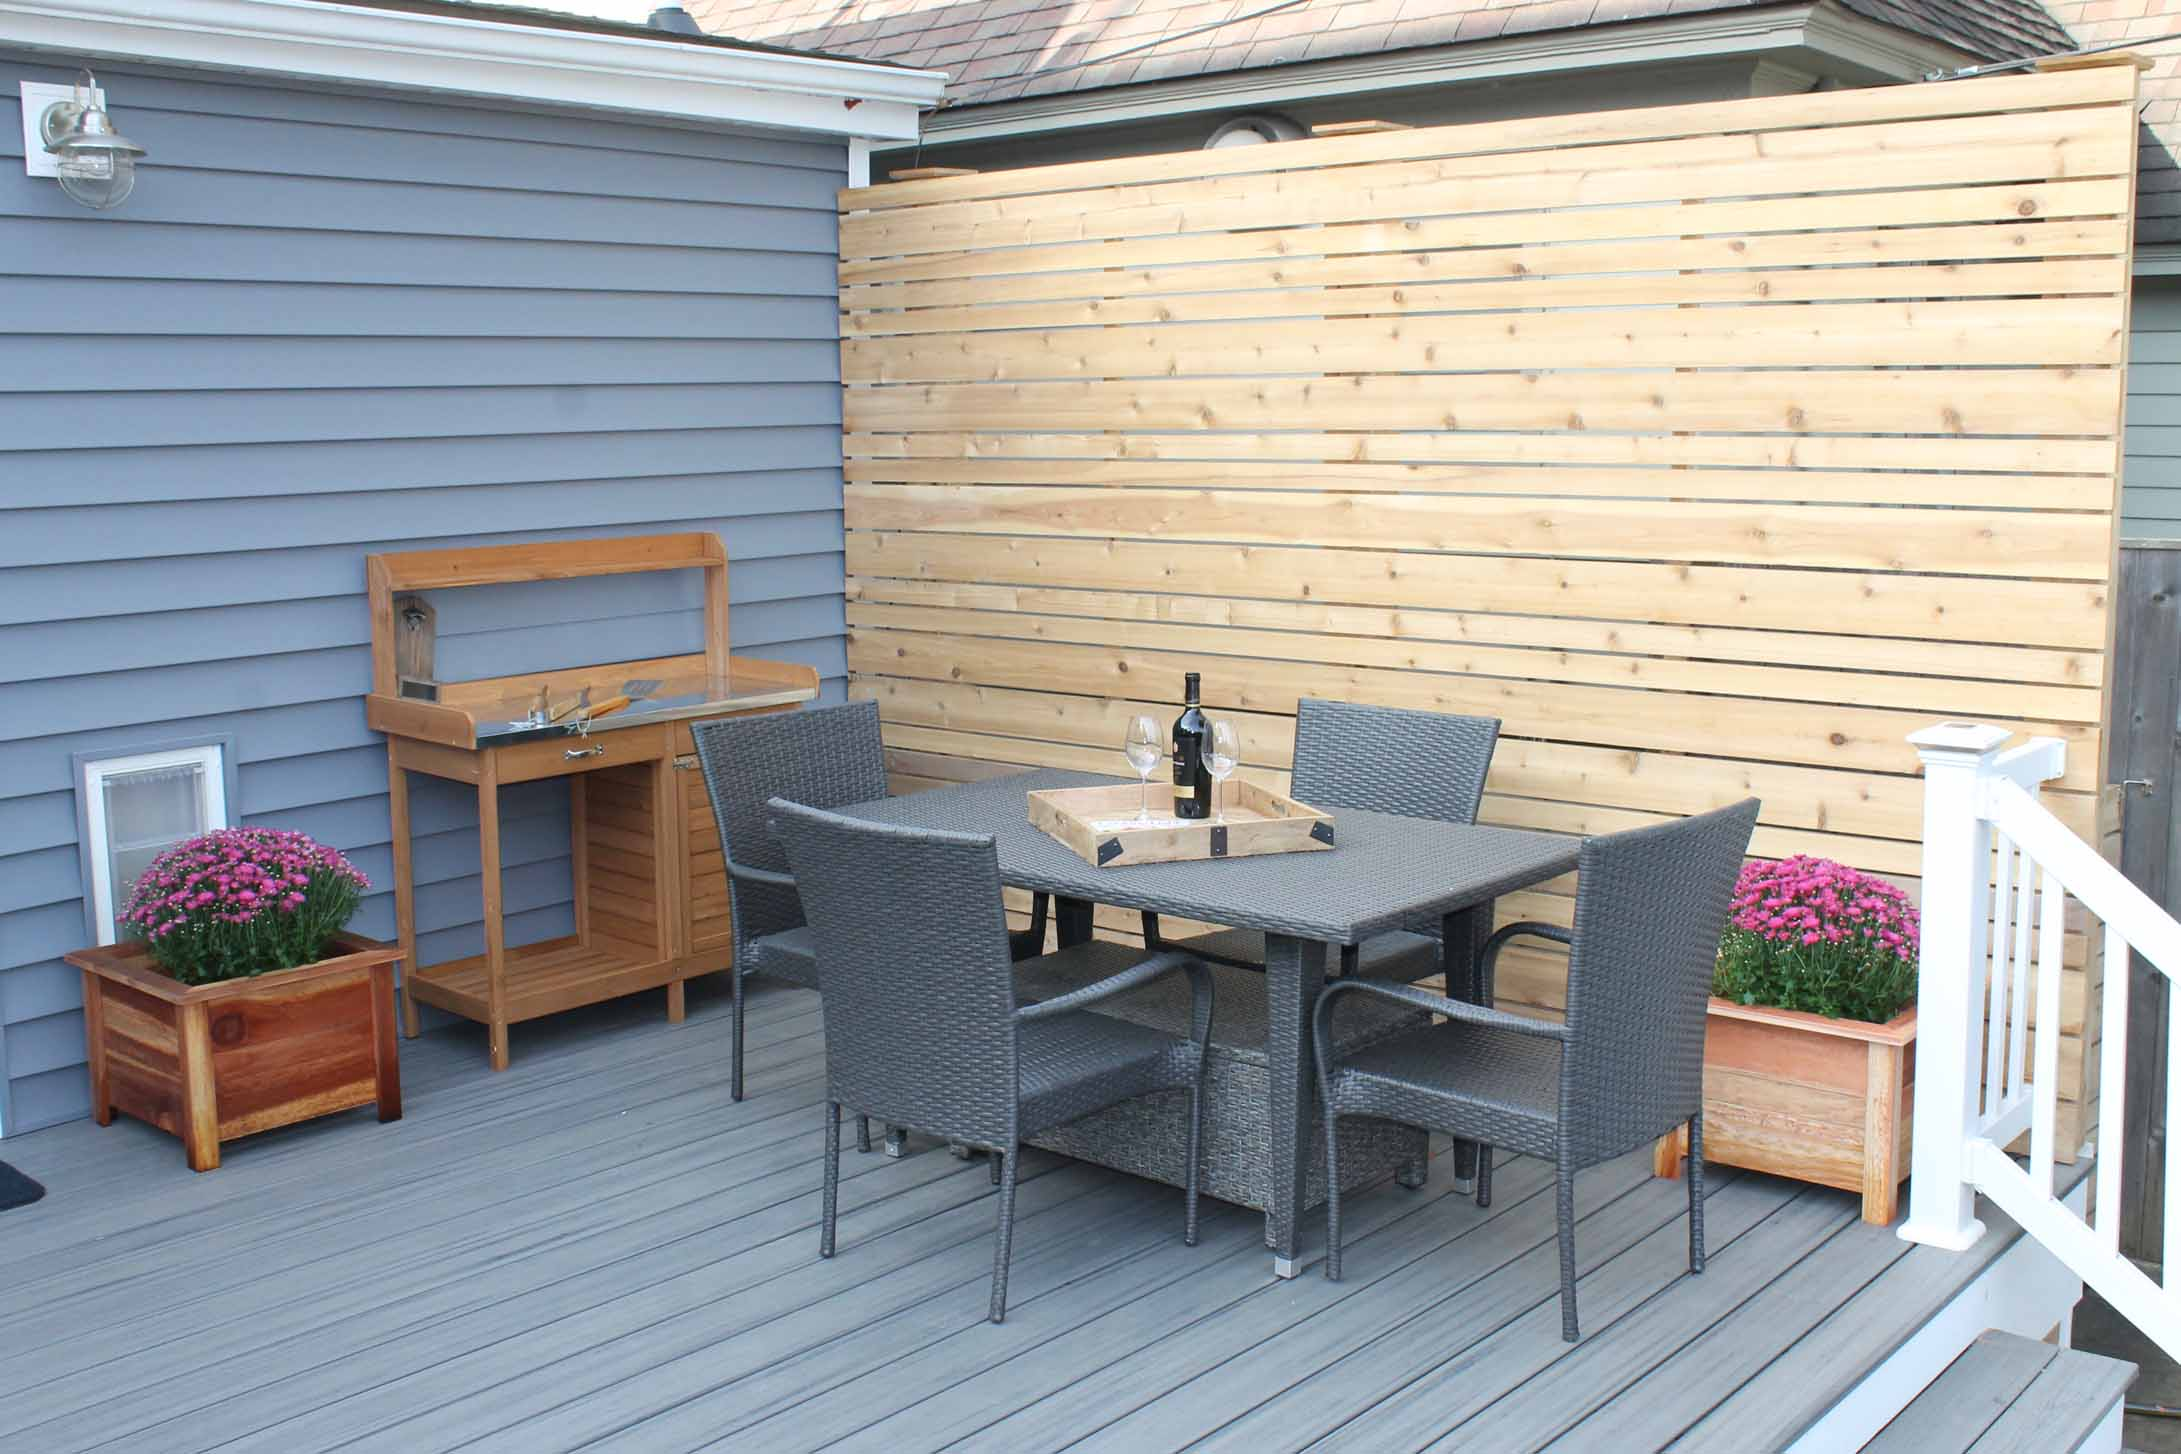 downtown-backyard-remodel-patio-pergola-small-space-firepit-techo-bloc-outdoor-living